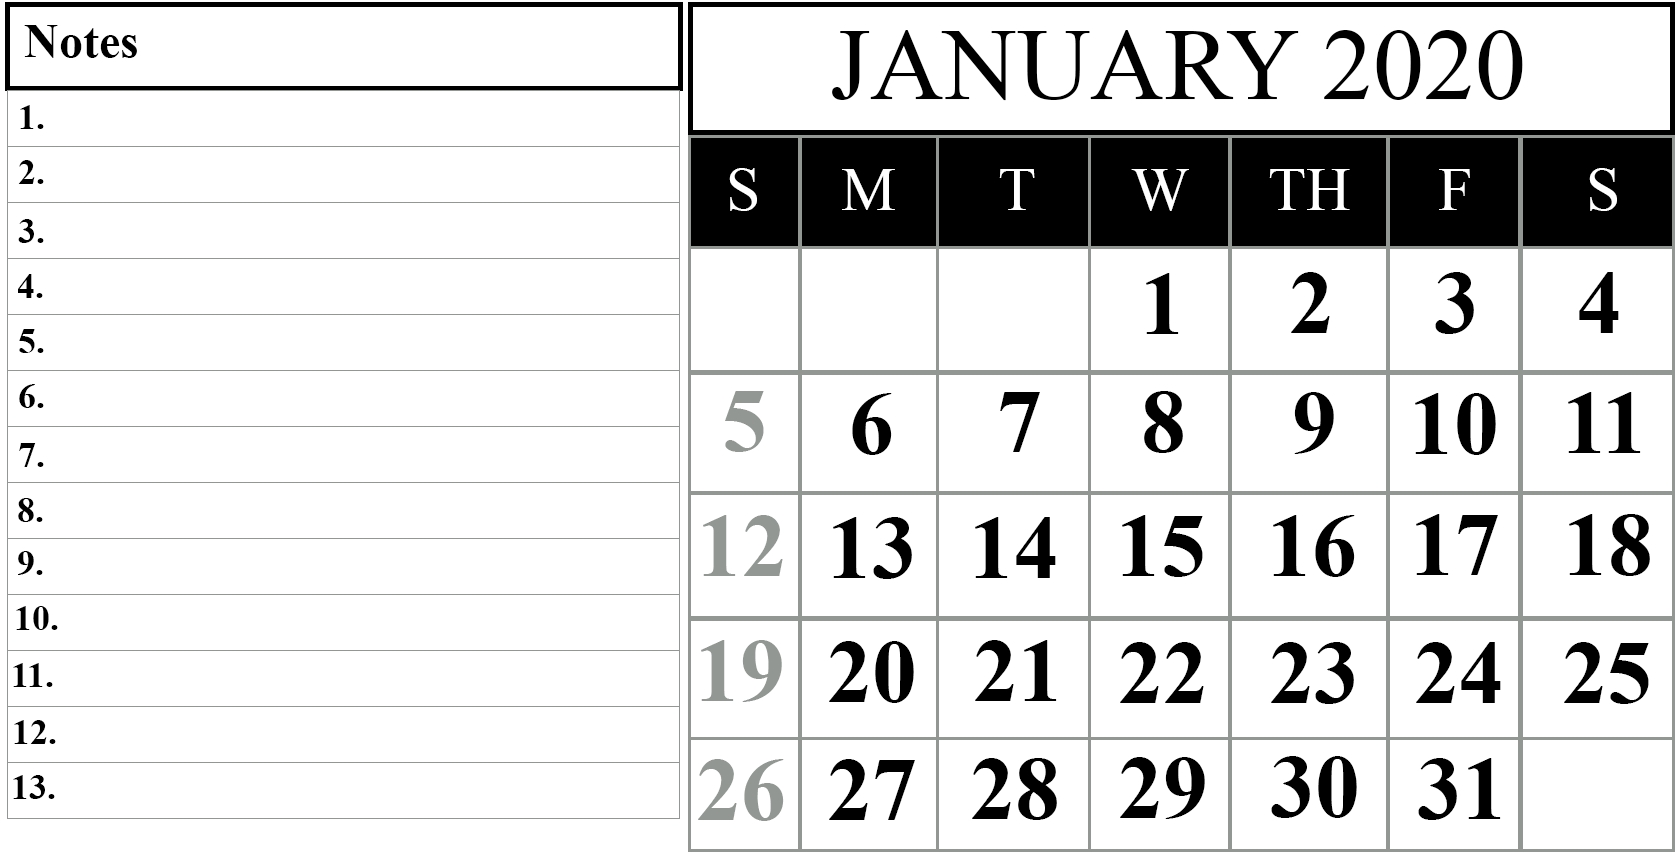 Free Blank January 2020 Calendar Printable In Pdf, Word-January 2020 Calendar New Zealand